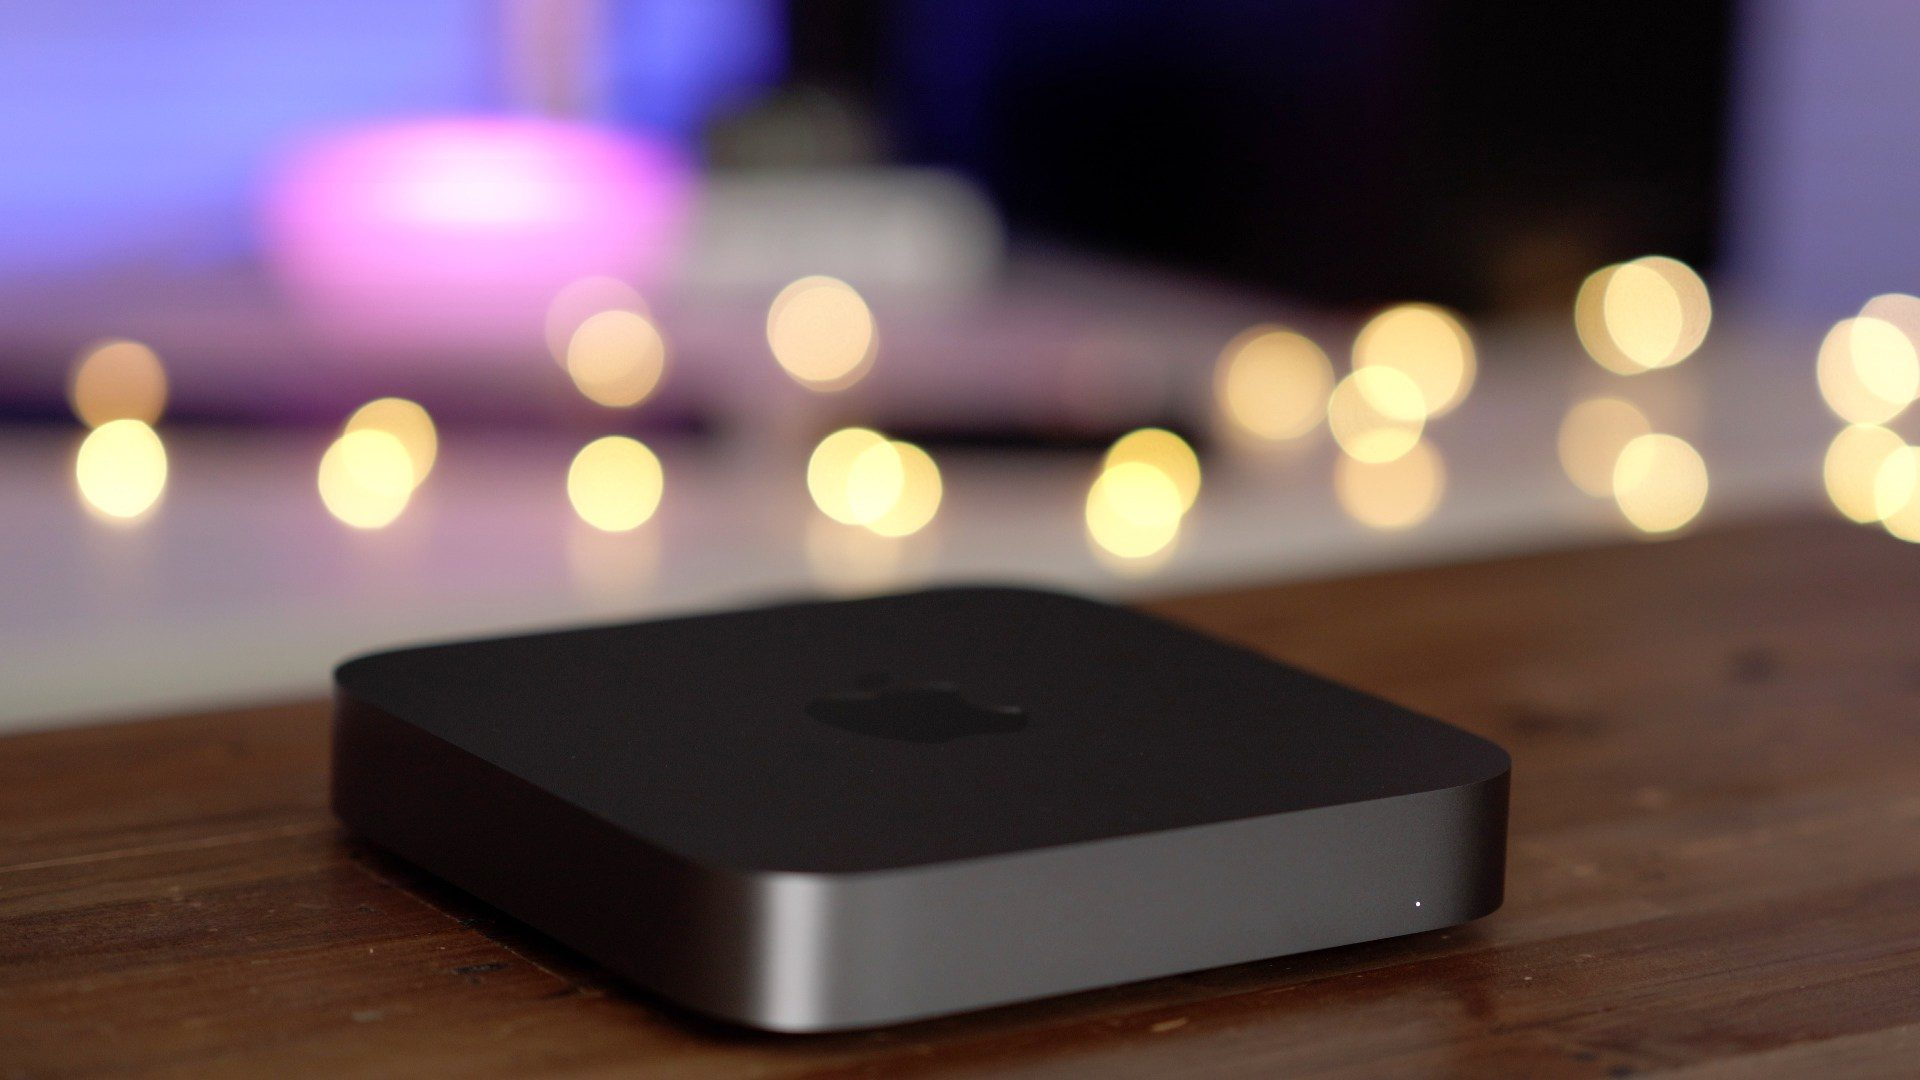 Mac mini deals take $200 off, plus refurbished MacBook Pro sale